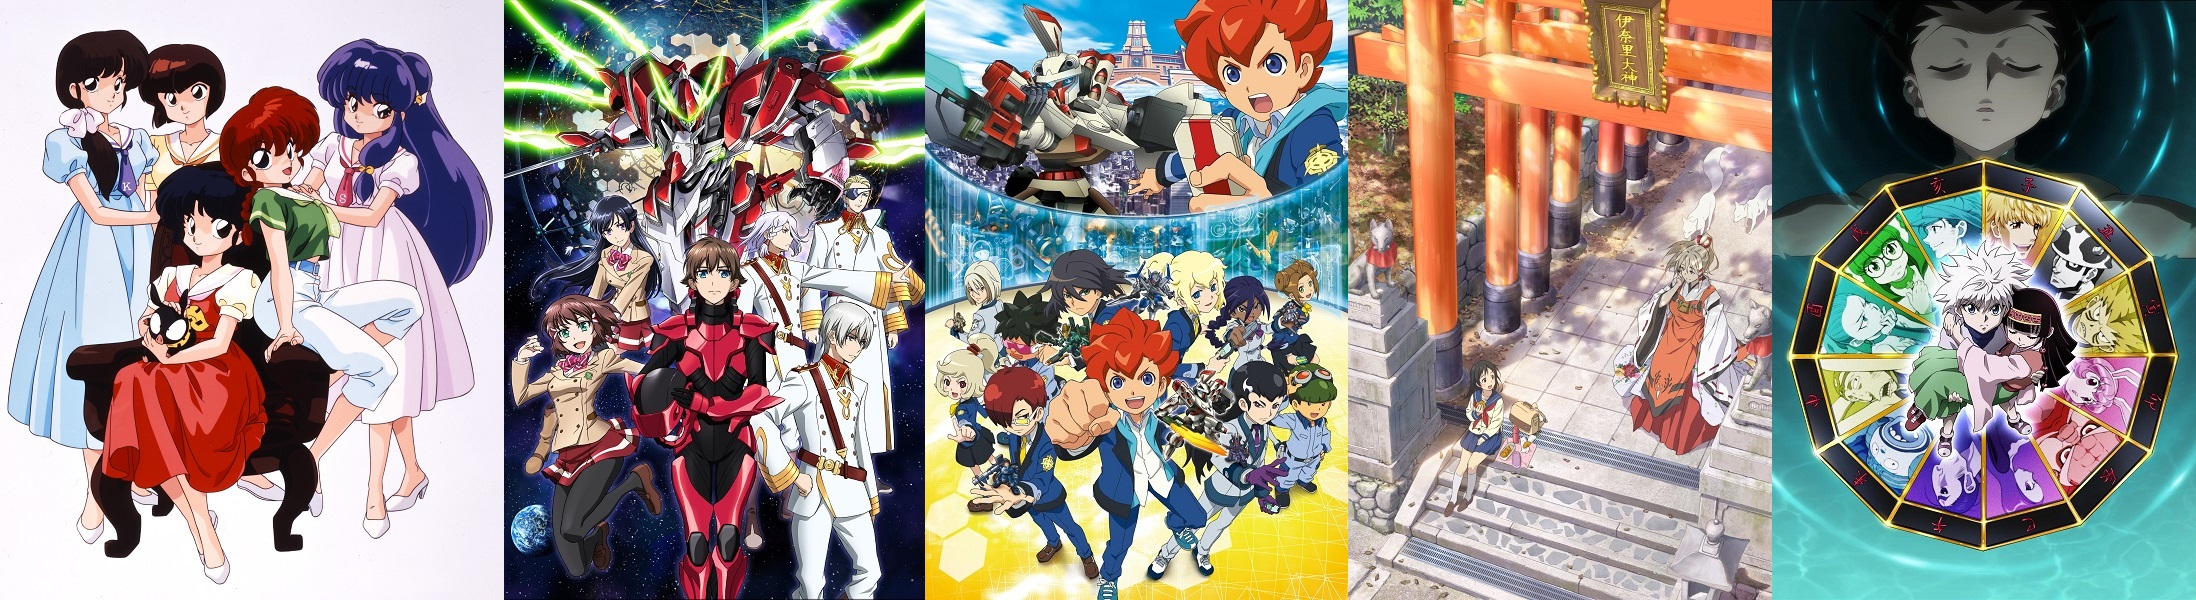 ANIMAX'S NEW LINEUP FOR JANUARY 2015